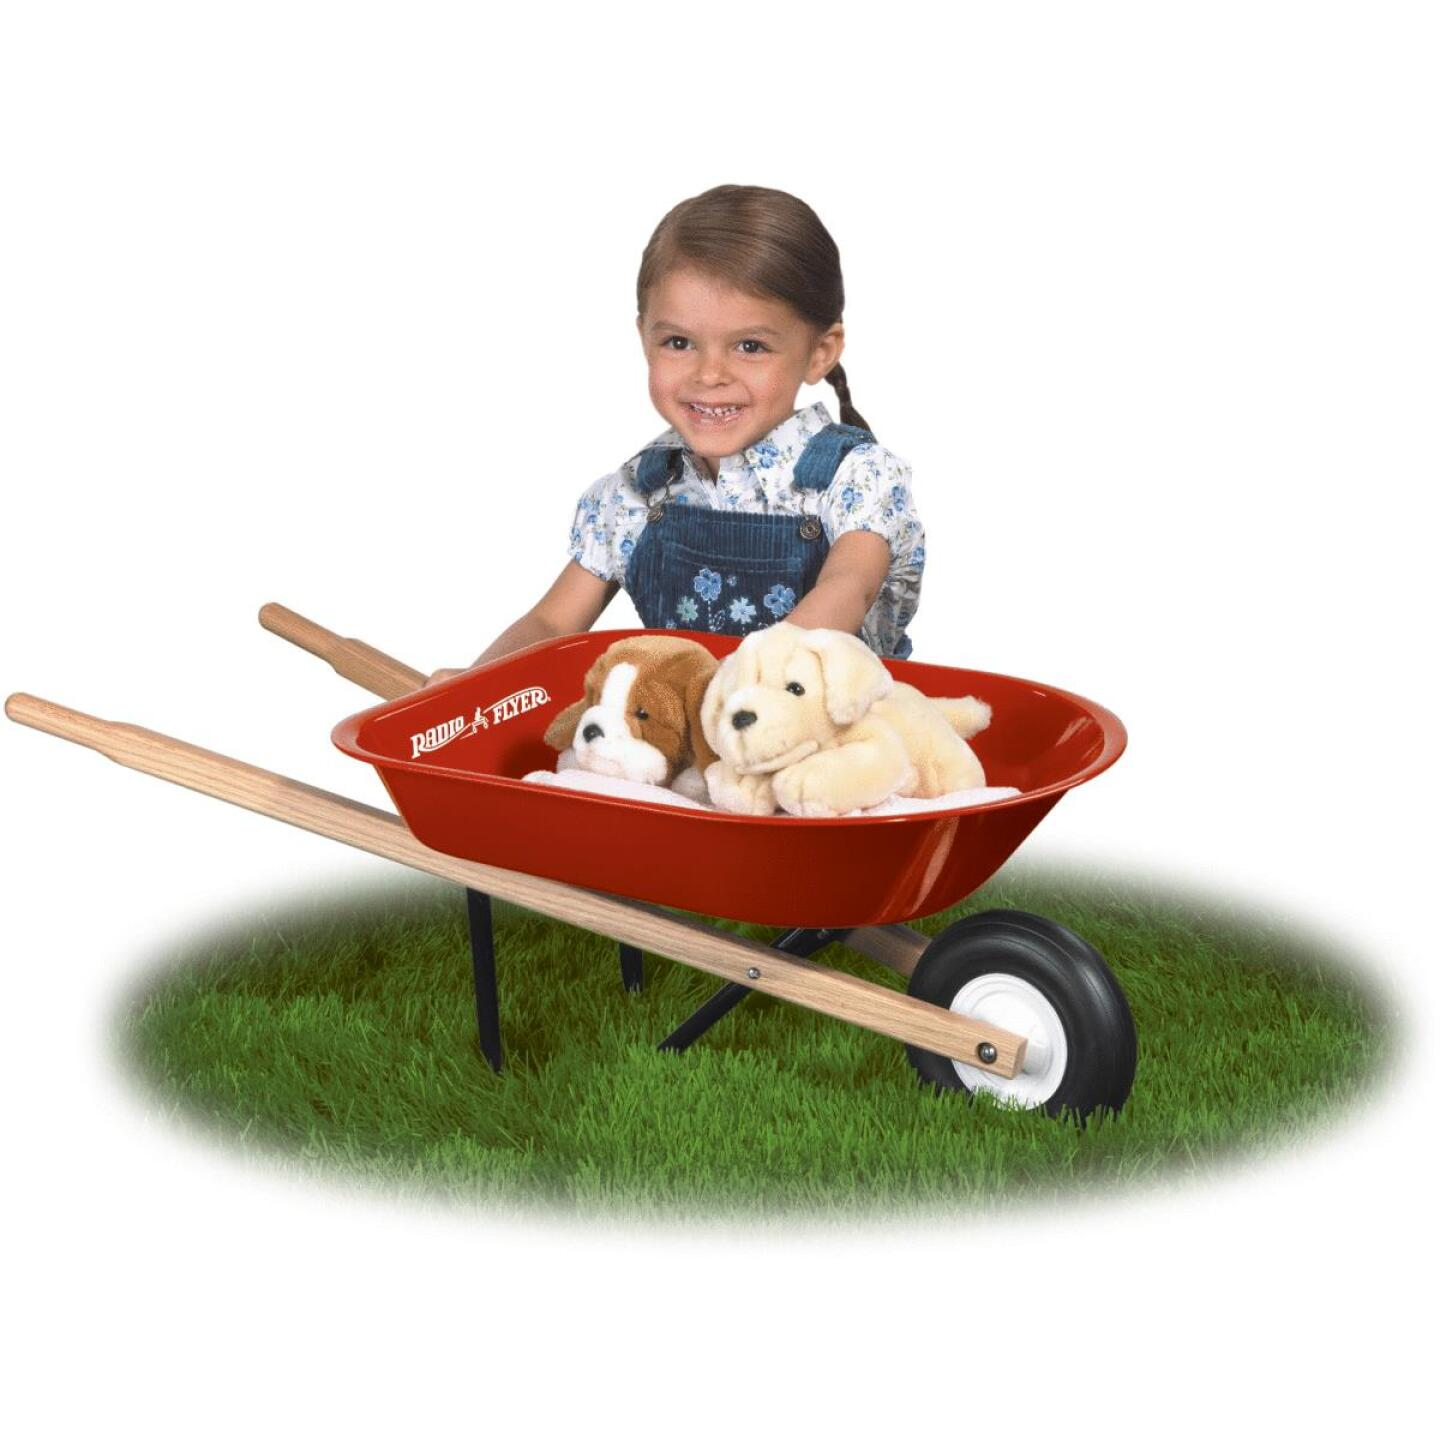 Radio Flyer 30 Lb. Steel Kid's Wheelbarrow Image 3